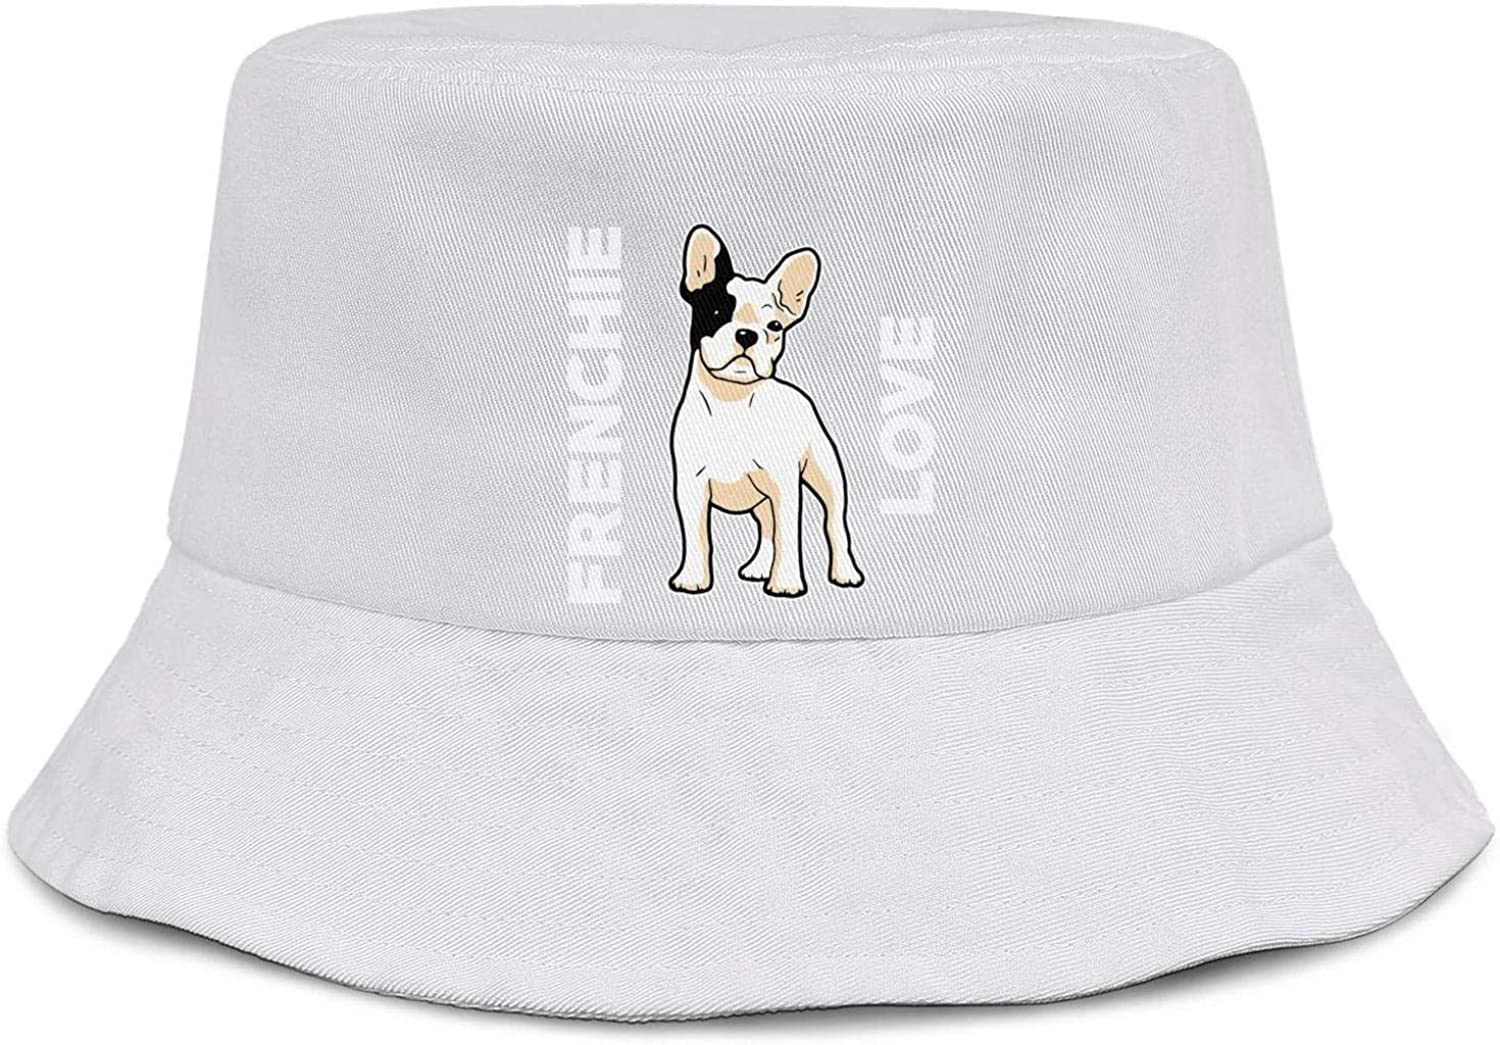 Cute Pet German Shepherd Dog Lightweight Unisex Baseball Caps Adjustable Breathable Sun Hat for Sport Outdoor Black